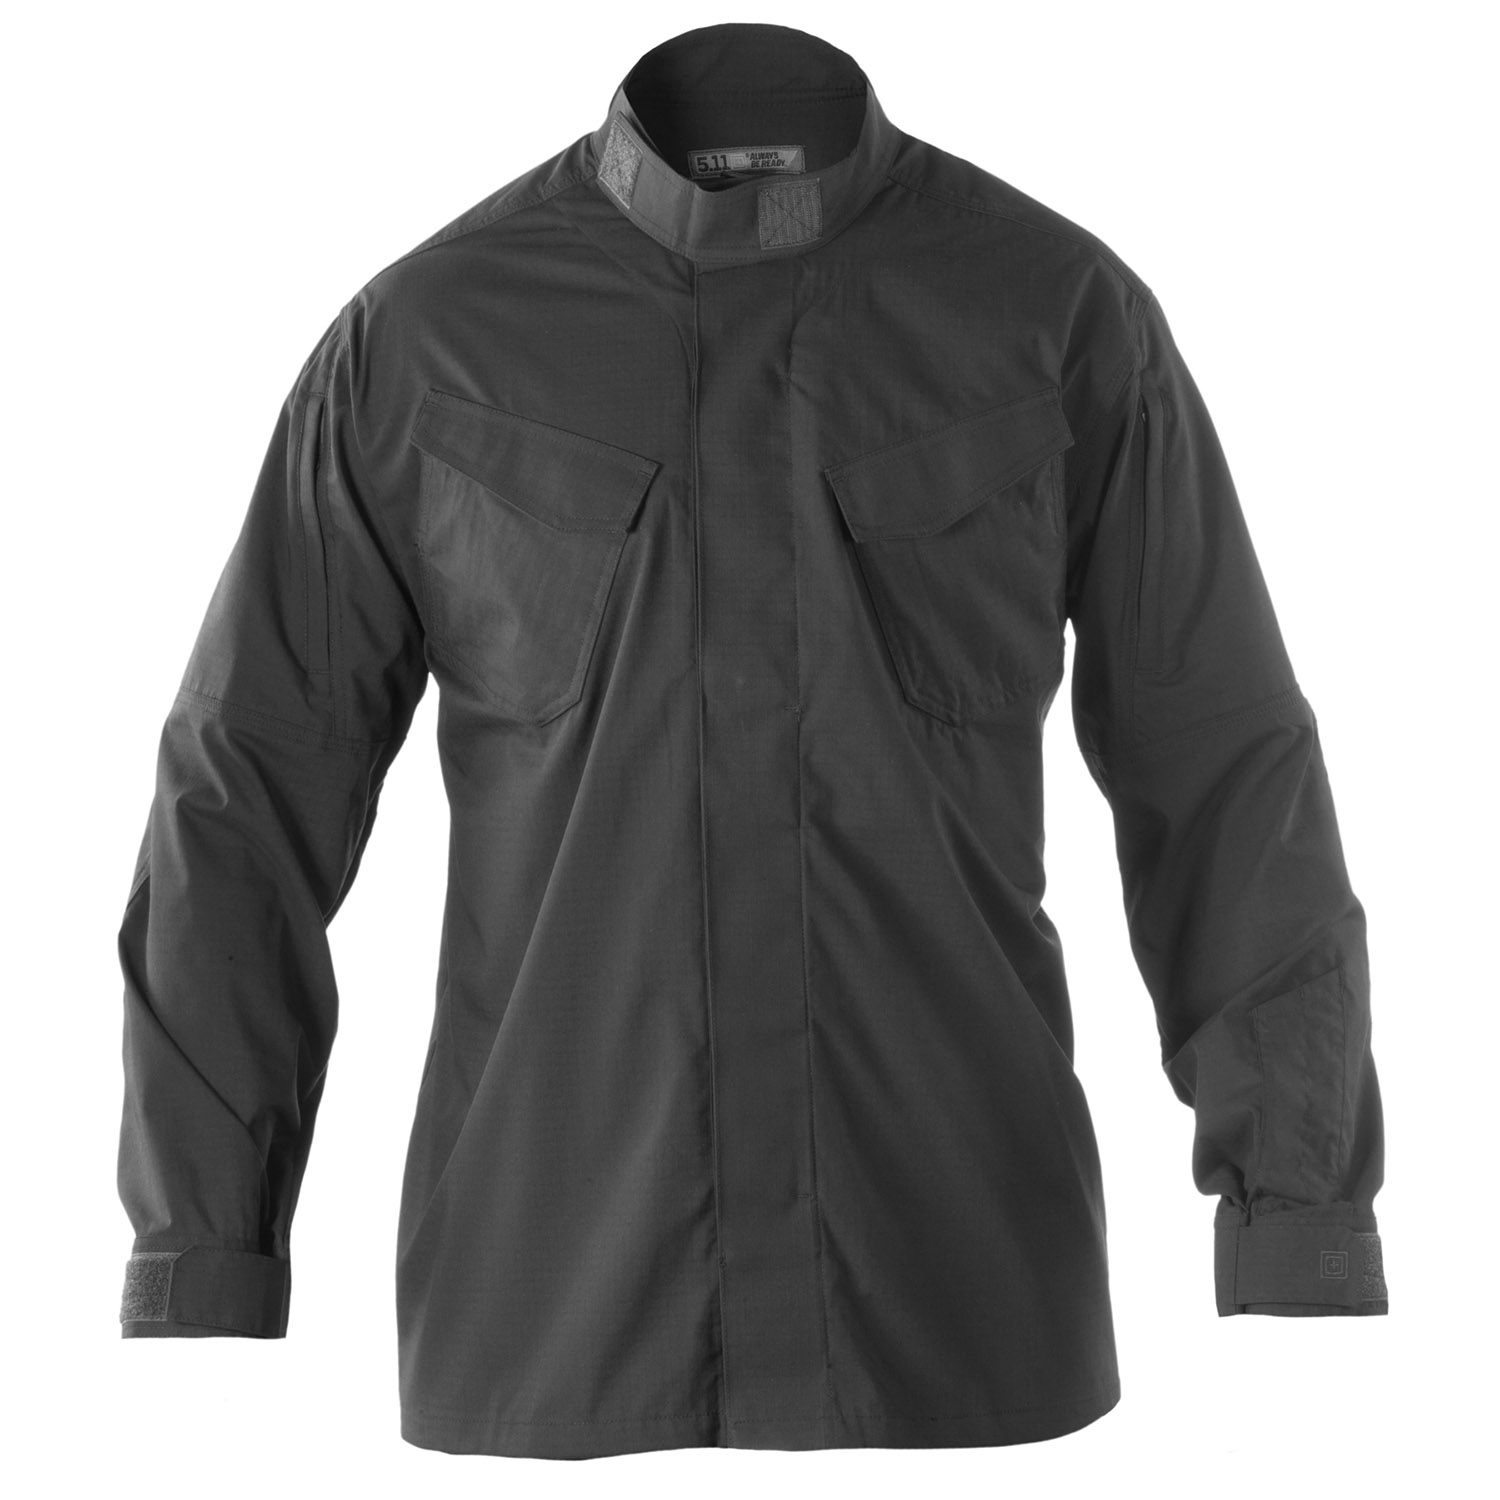 5.11 Tactical Stryke TDU Shirt